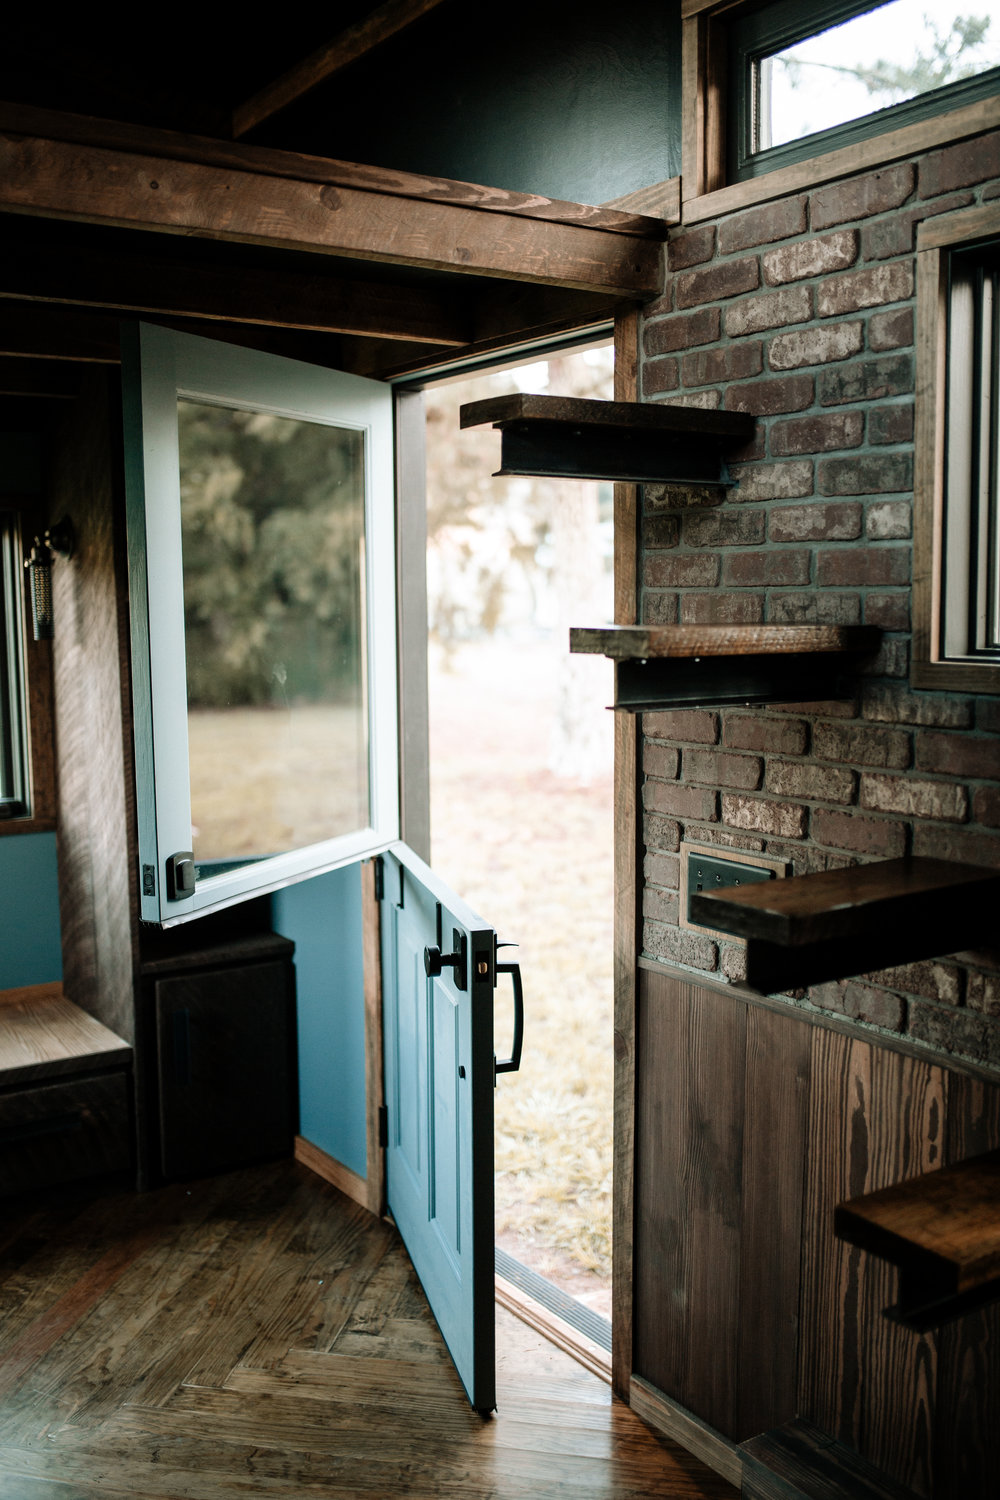 The Rook by Wind River Tiny Homes - Dutch door, floating rebar steps up to loft, herringbone floors, real brick veneer.